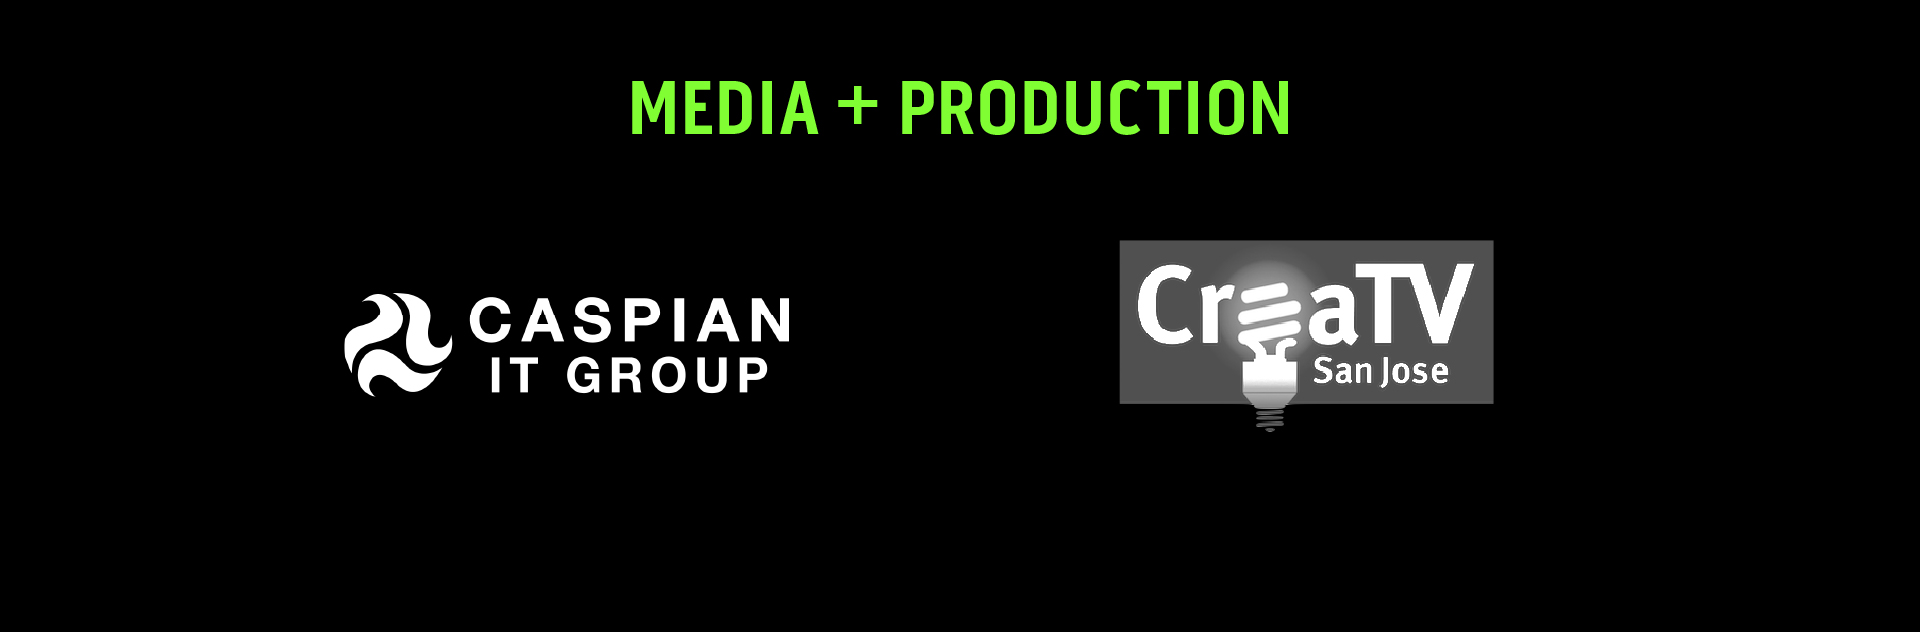 Logos of Media and Production partners